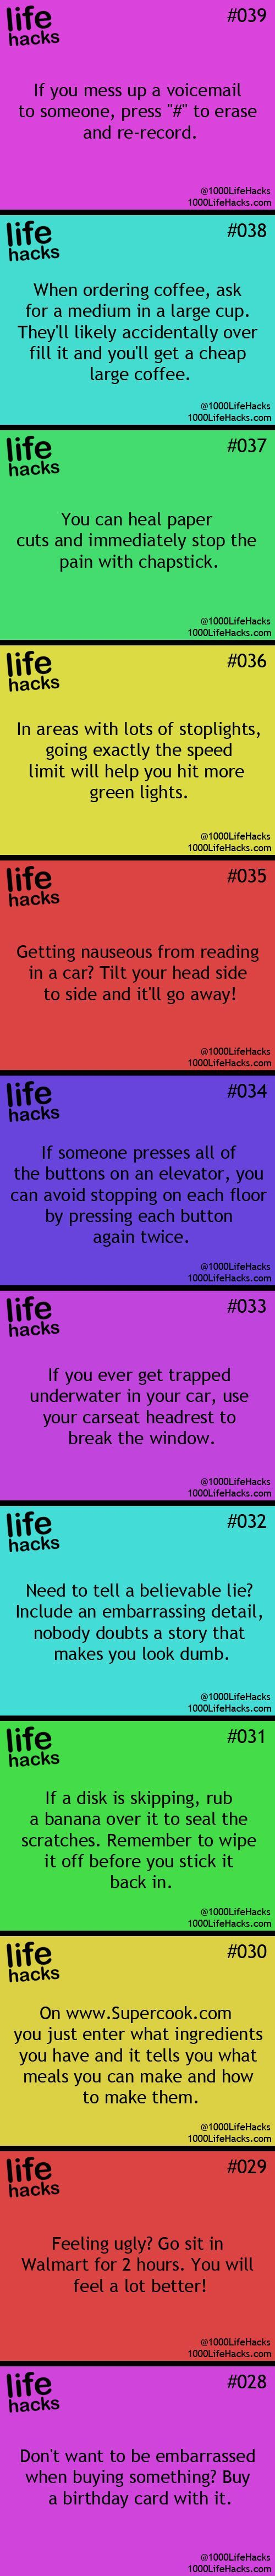 I love life hacks! So many great ideas!!